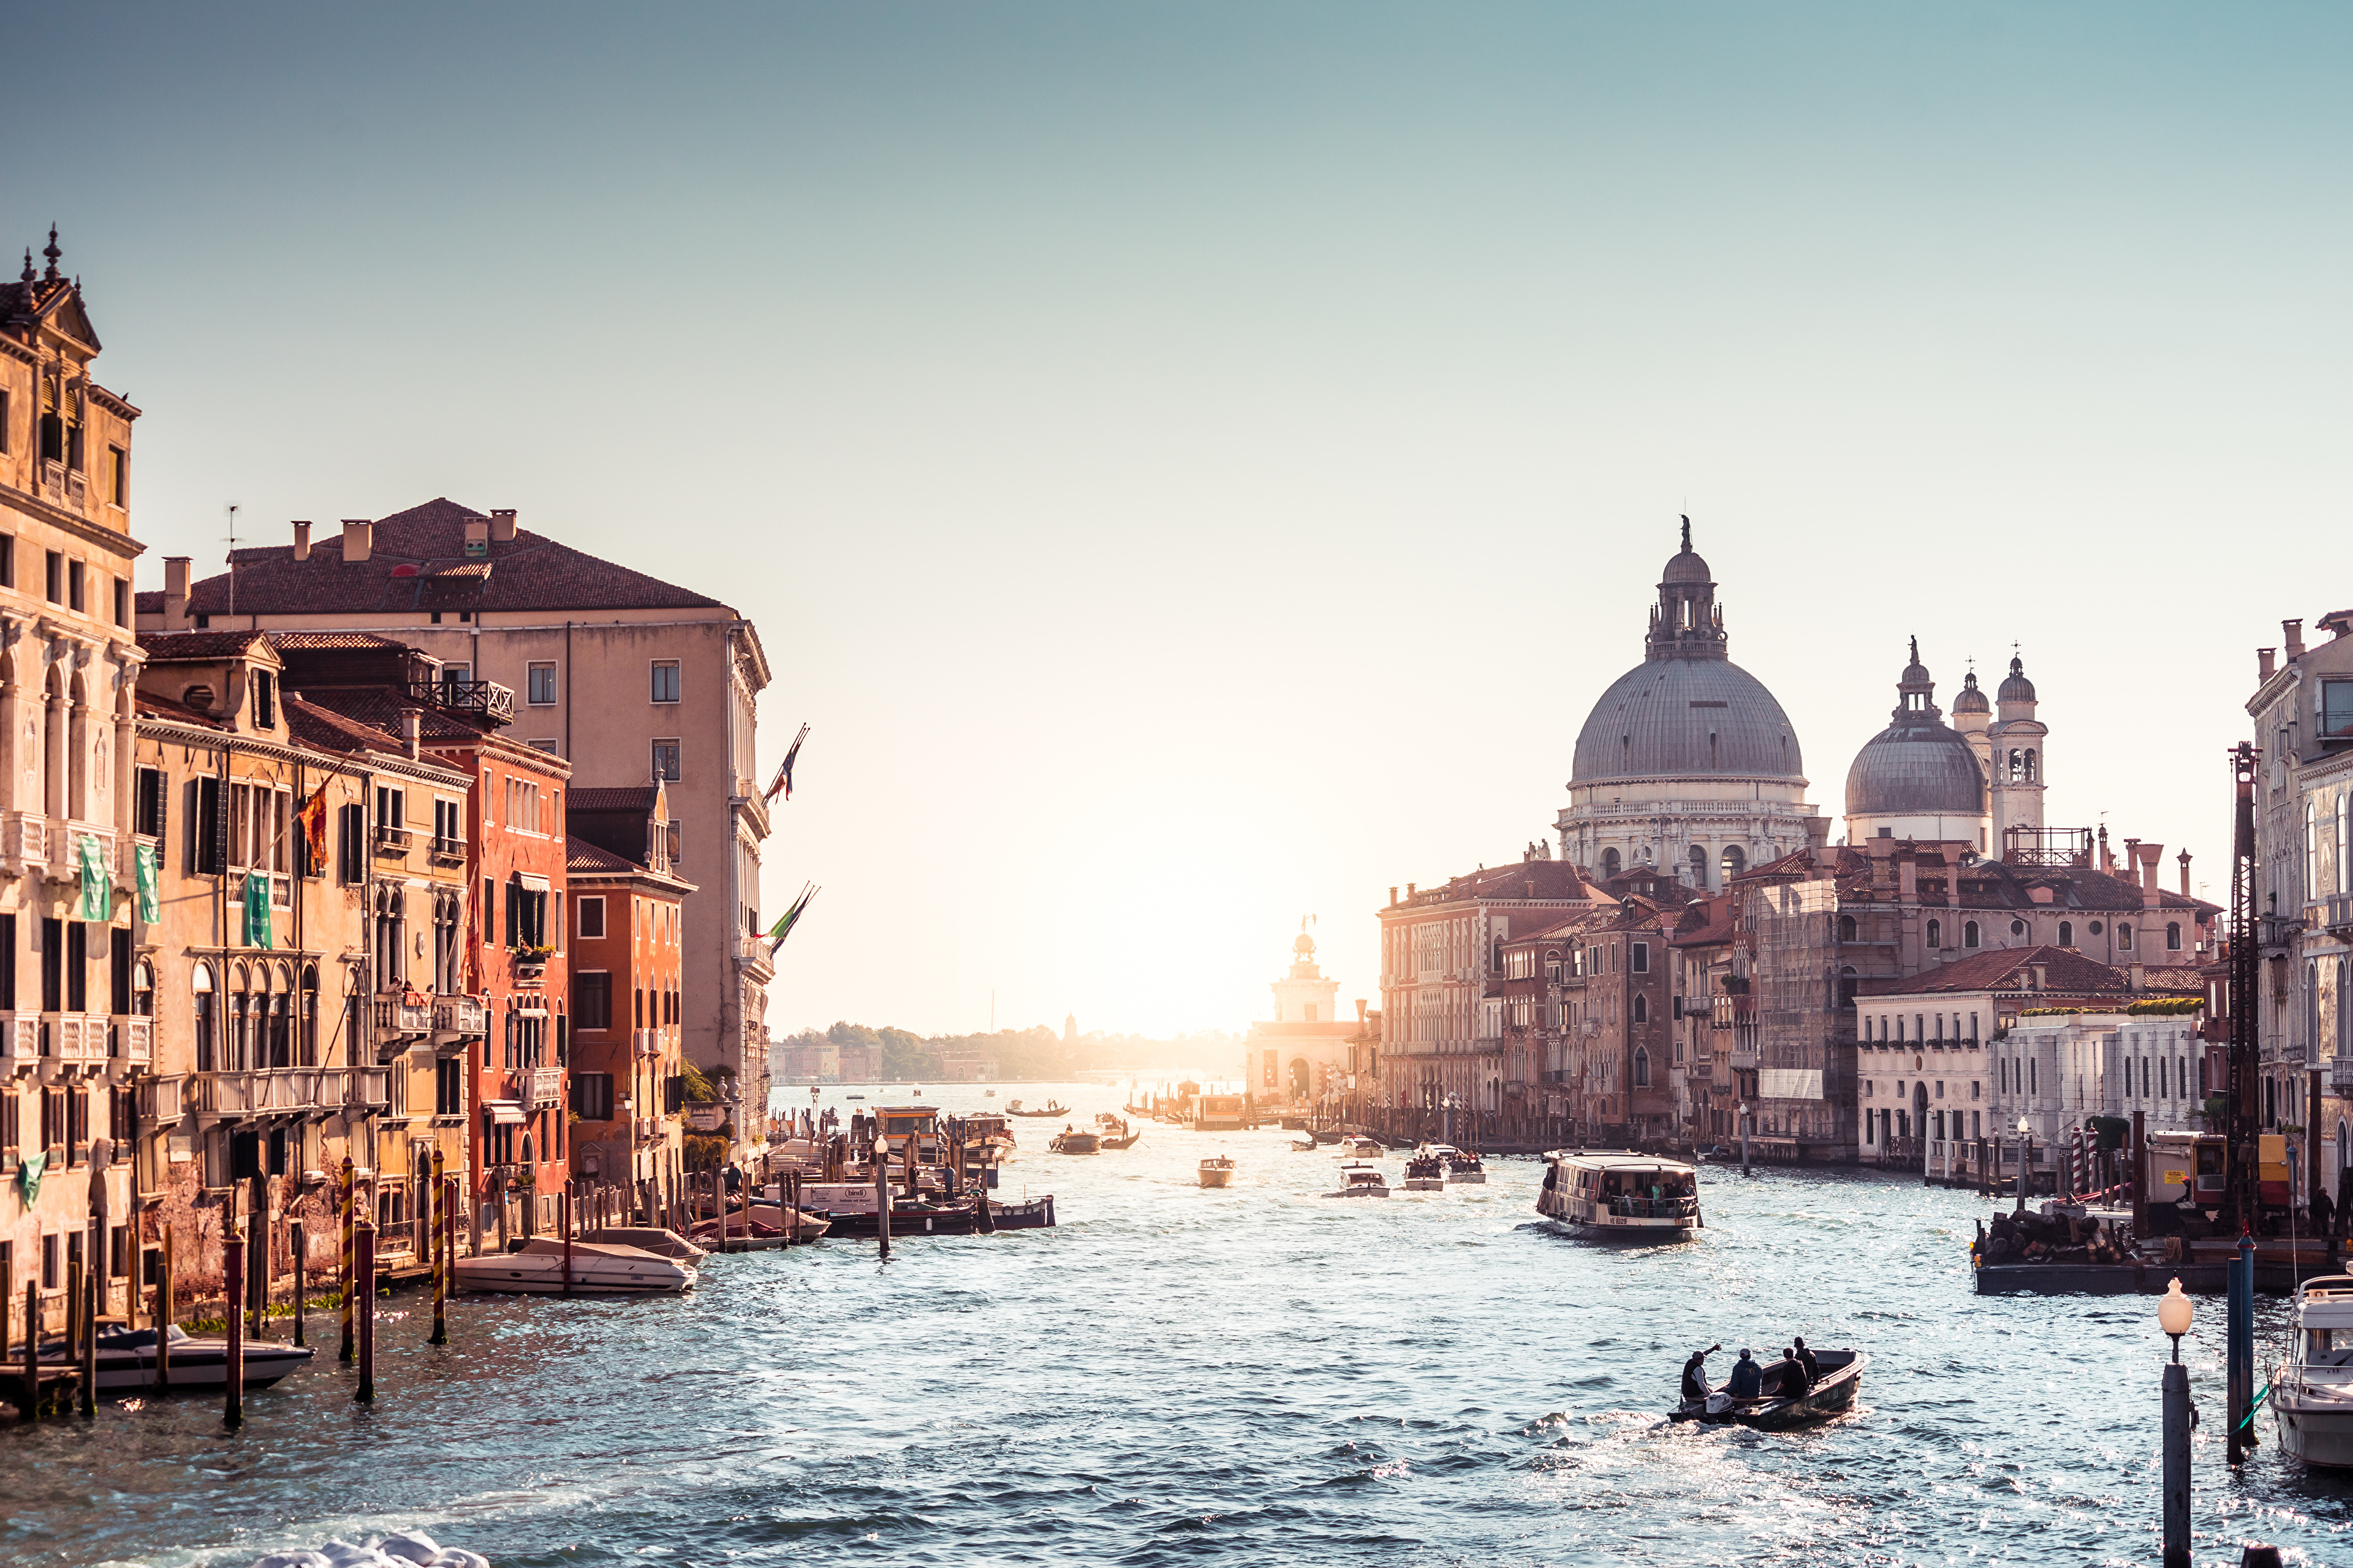 italy riverboat sunrises and sunsets grand canal 4k 1608983164 - Italy Riverboat Sunrises And Sunsets Grand Canal 4k - Italy Riverboat Sunrises And Sunsets Grand Canal 4 wallpapers